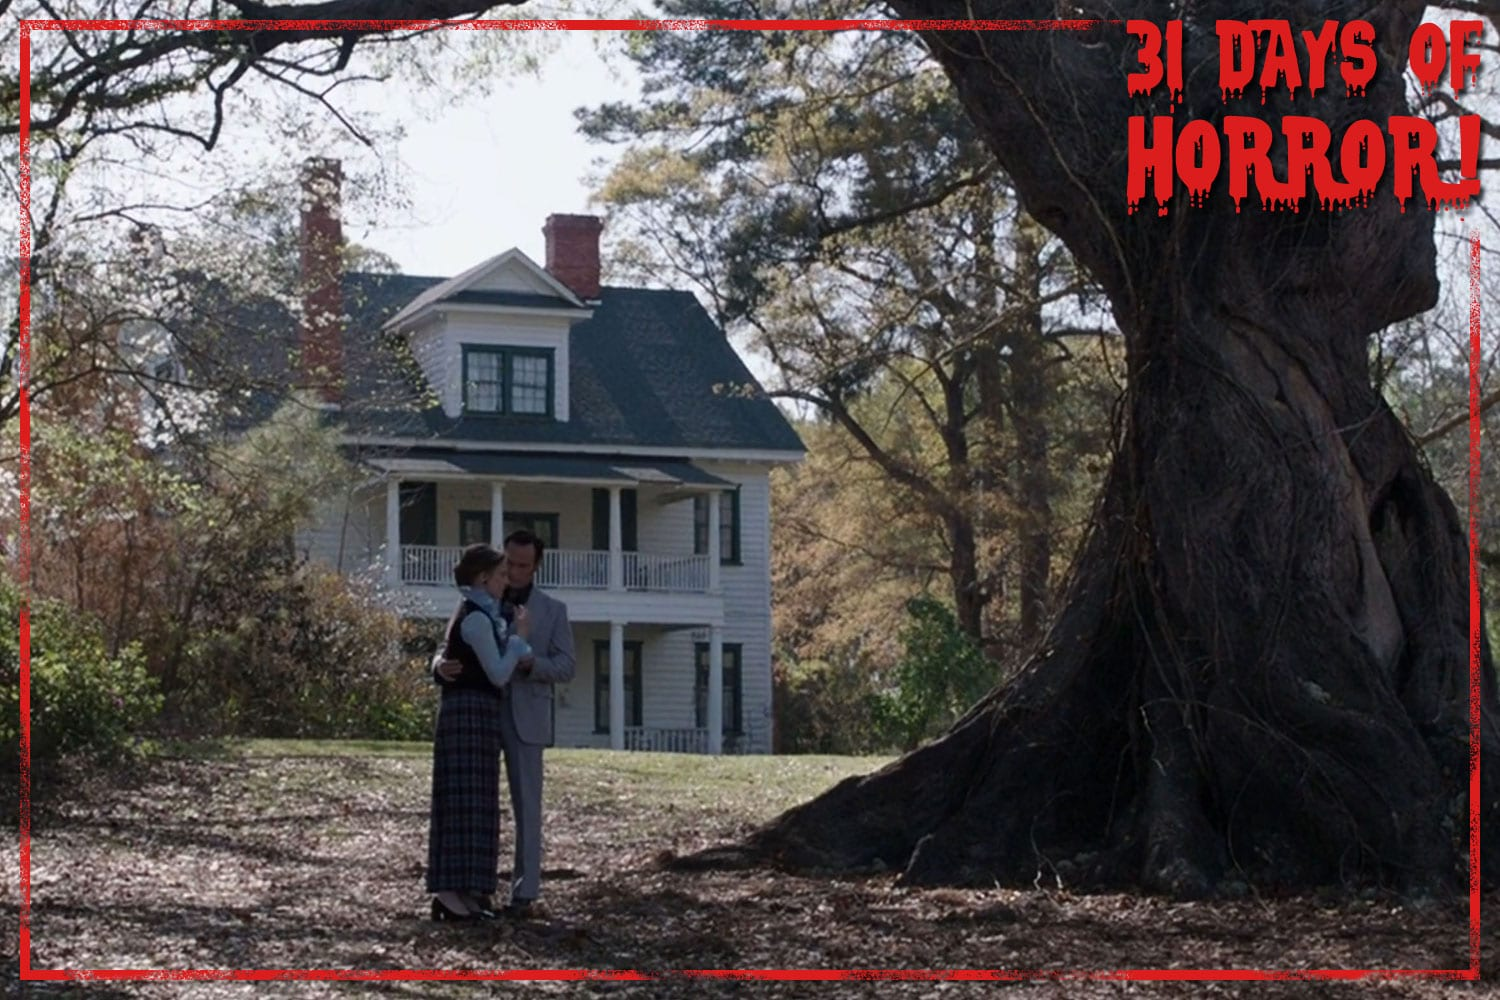 The Conjuring 2013 31 Days Of Horror Oct 25